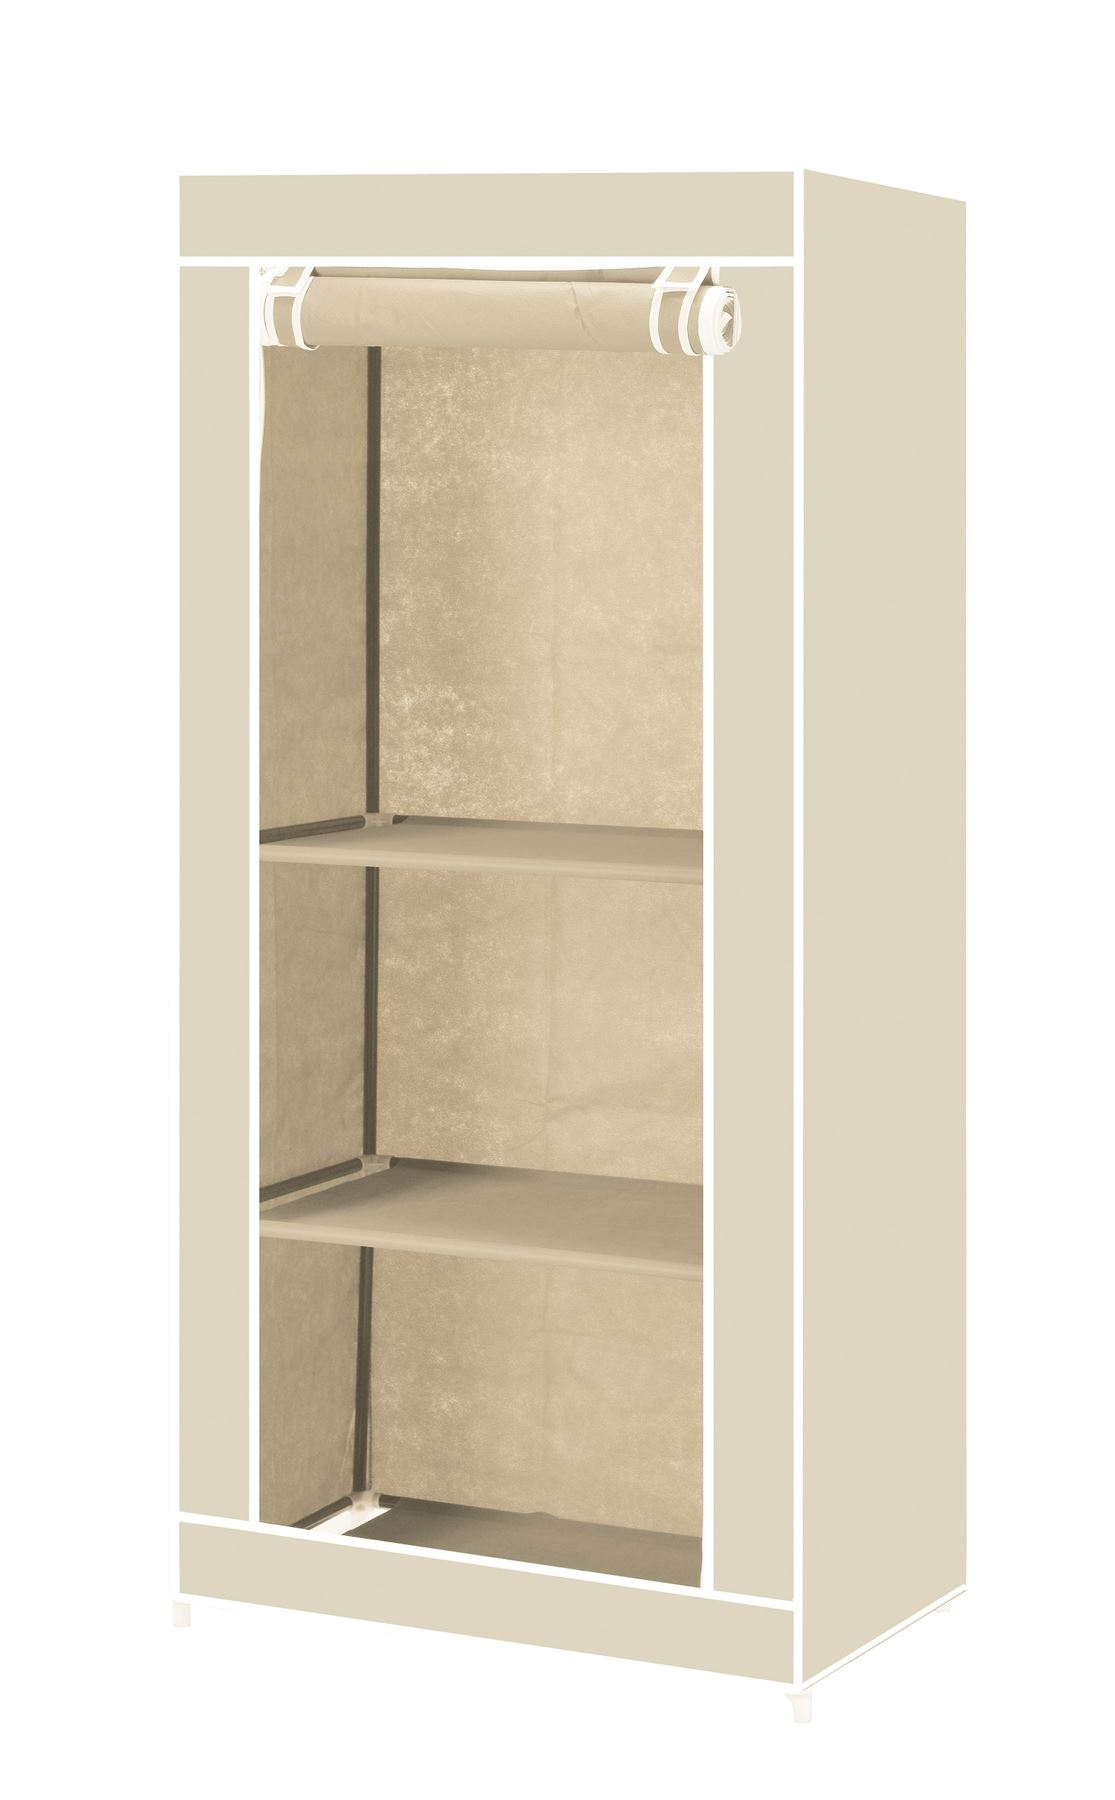 Vinsani Single Canvas Clothes Storage Organiser Wardrobe Cupboard